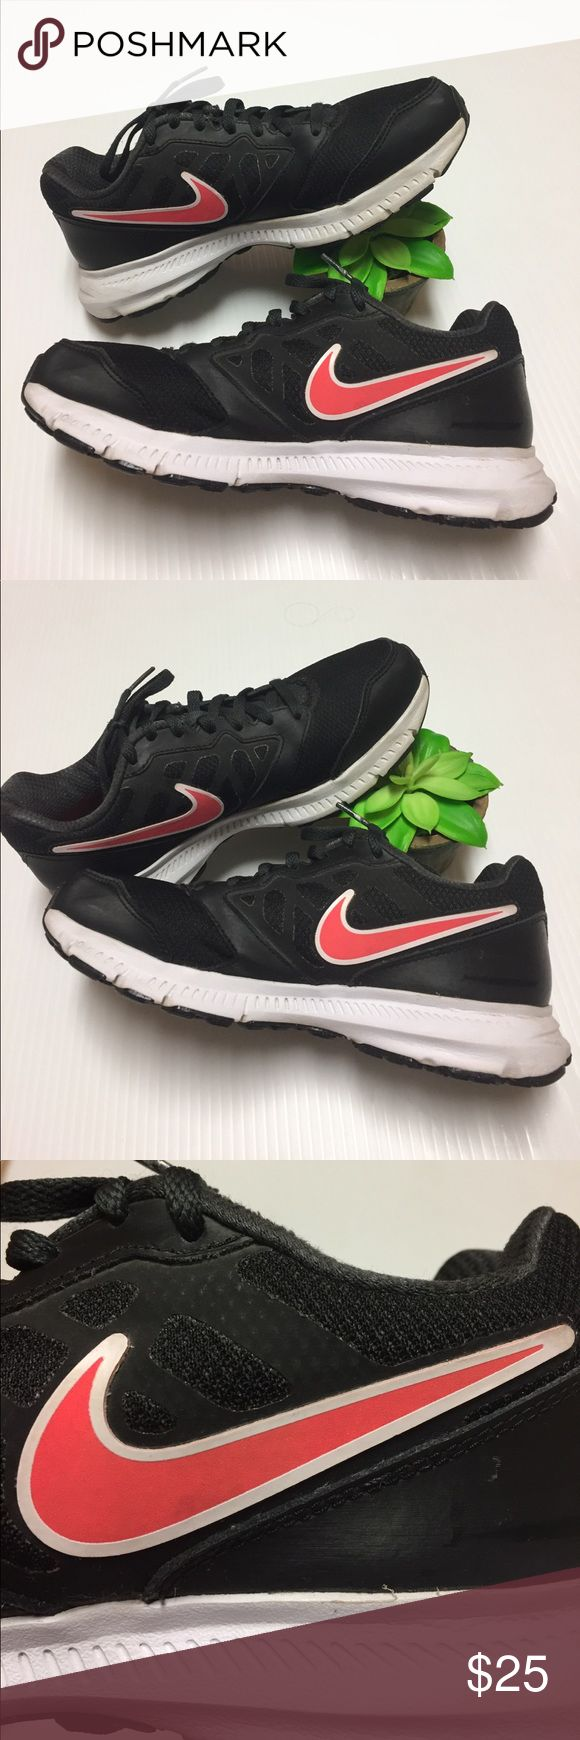 Women Nikes Black Nikes with coral pink signature Nike logo, good preowned condition with a few tiny scuffs and an average amount of light wear as shown Nike Shoes Sneakers